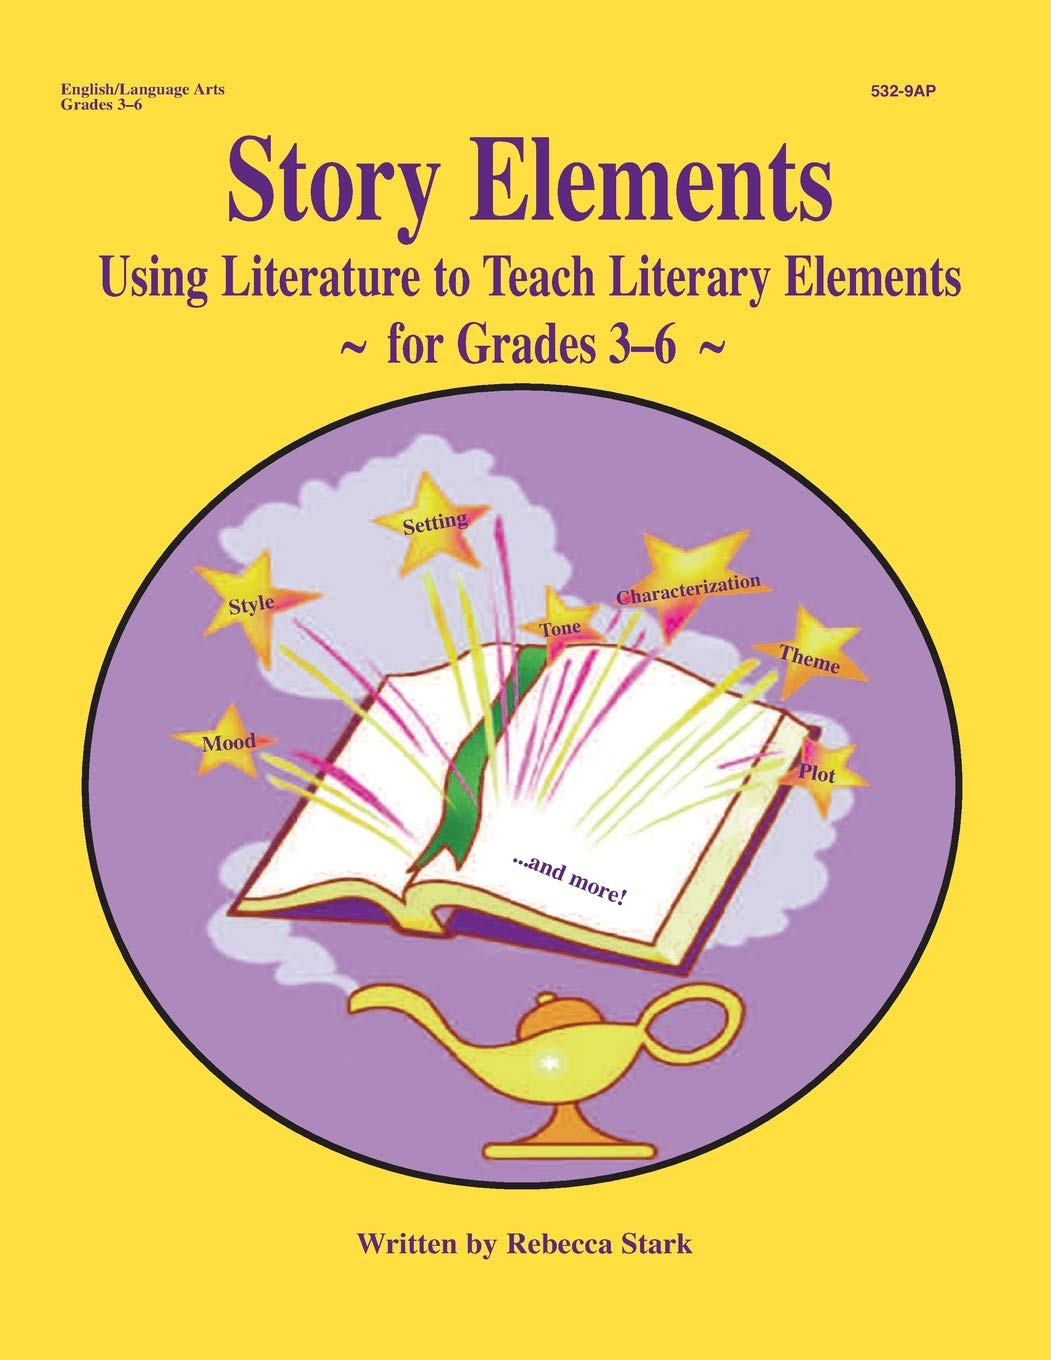 Story Elements: Grades 3-6: Using Literature to Teach